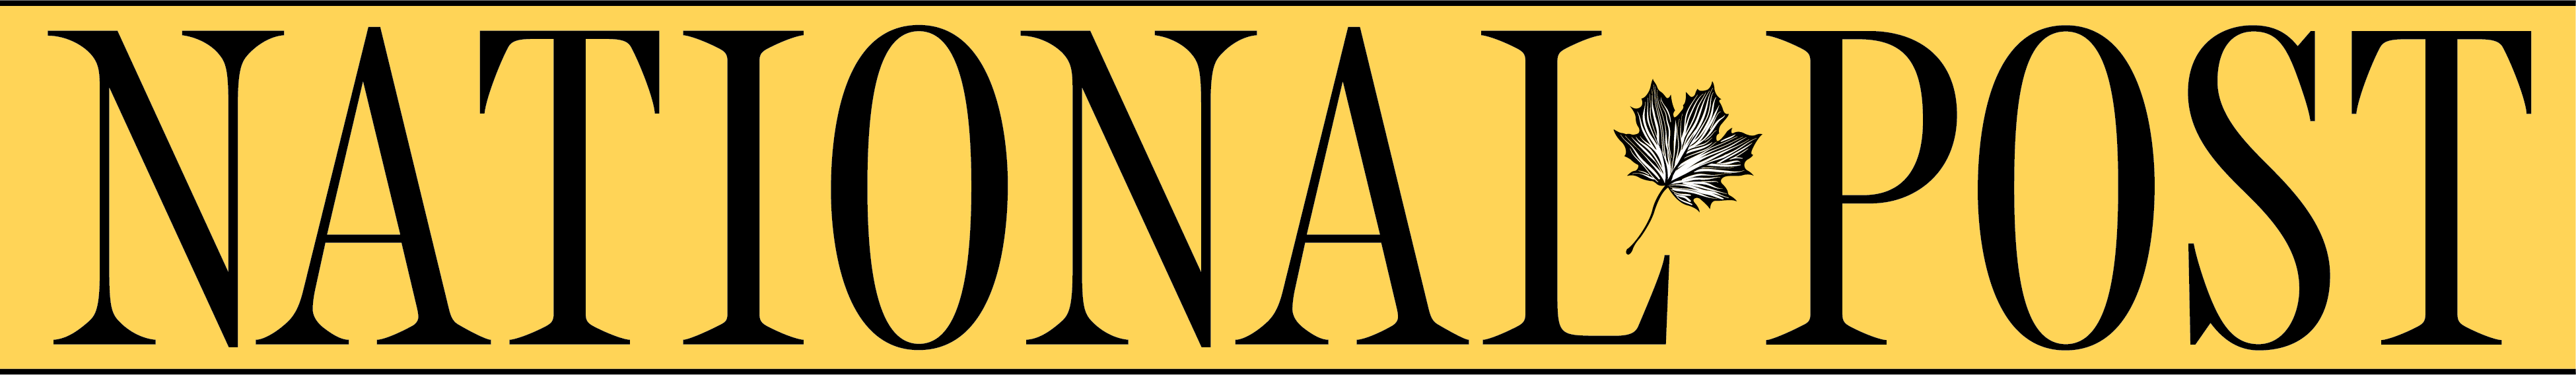 National Post - Logo